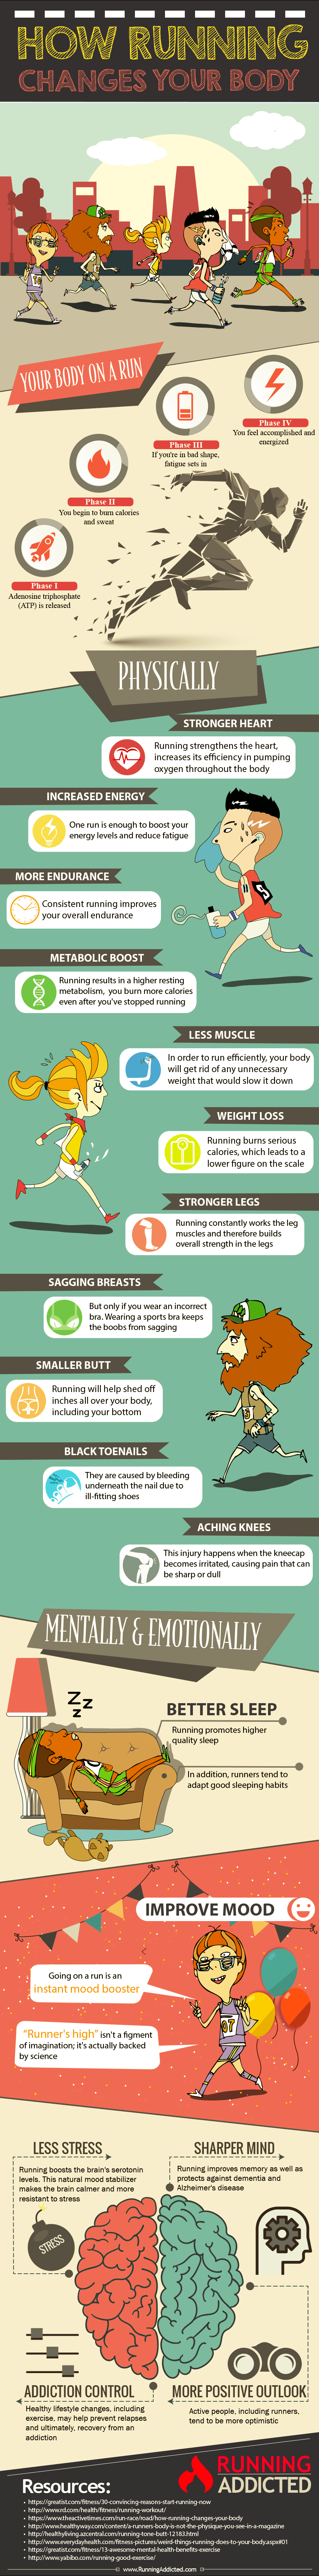 How Does Running Change Your Body? (Infographic)